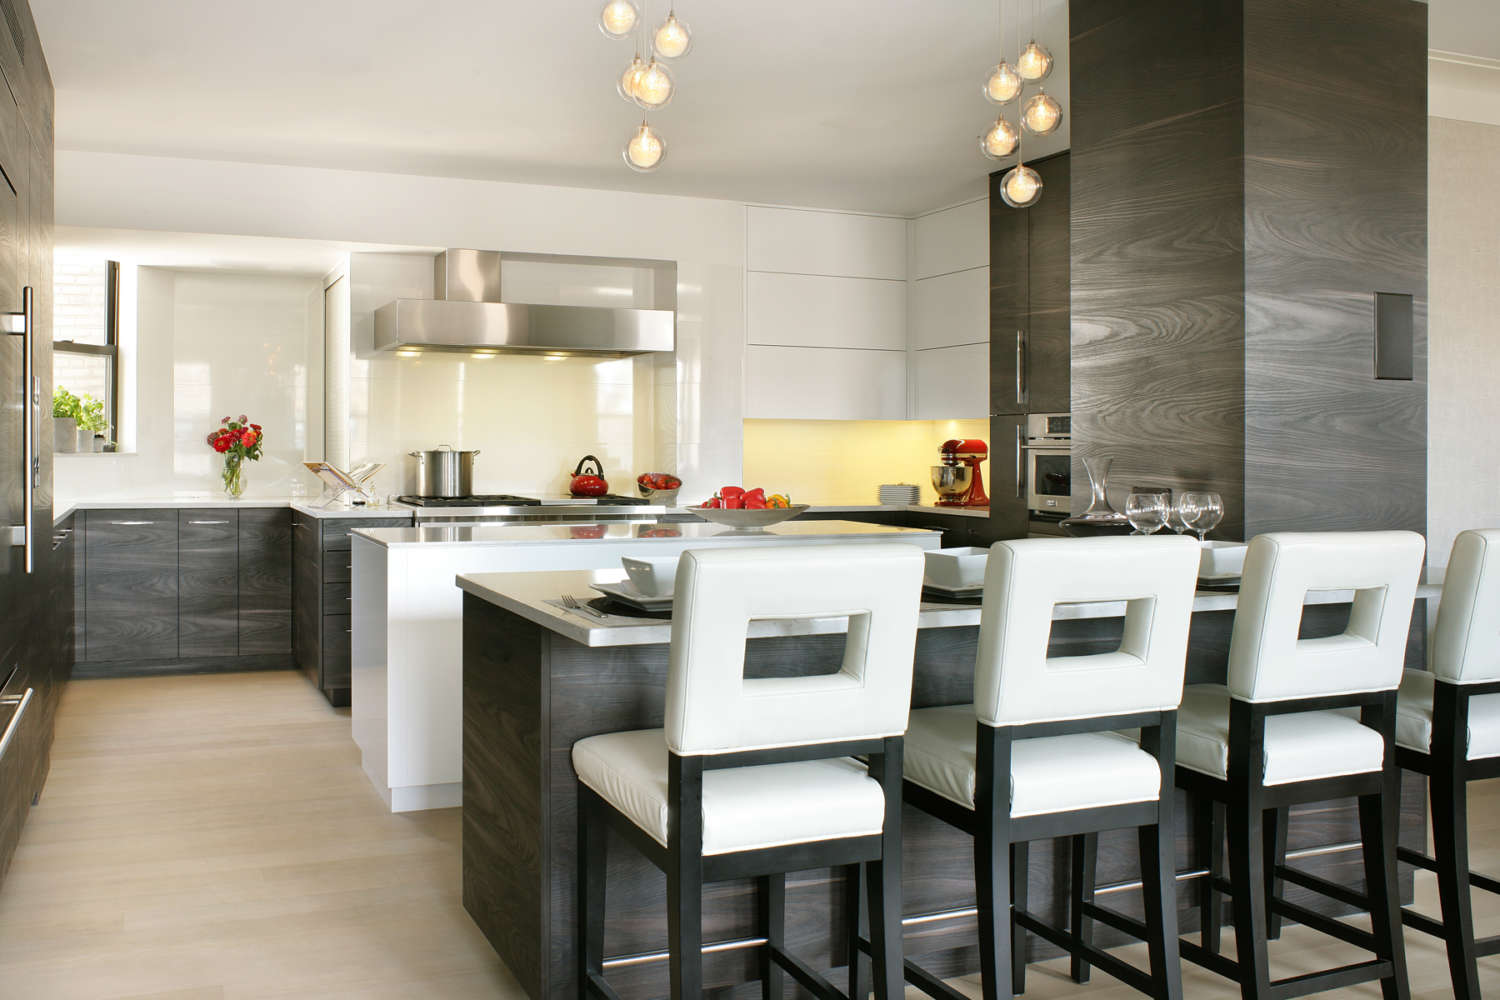 Contemporary kitchen offers a contrast in light and dark. Fully custom flat panel, frameless Artcraft Cabinetry in mix of pure white gloss and Yosemite Scuro laminate. Design by RitaLuisa Garces of Bilotta Kitchens.